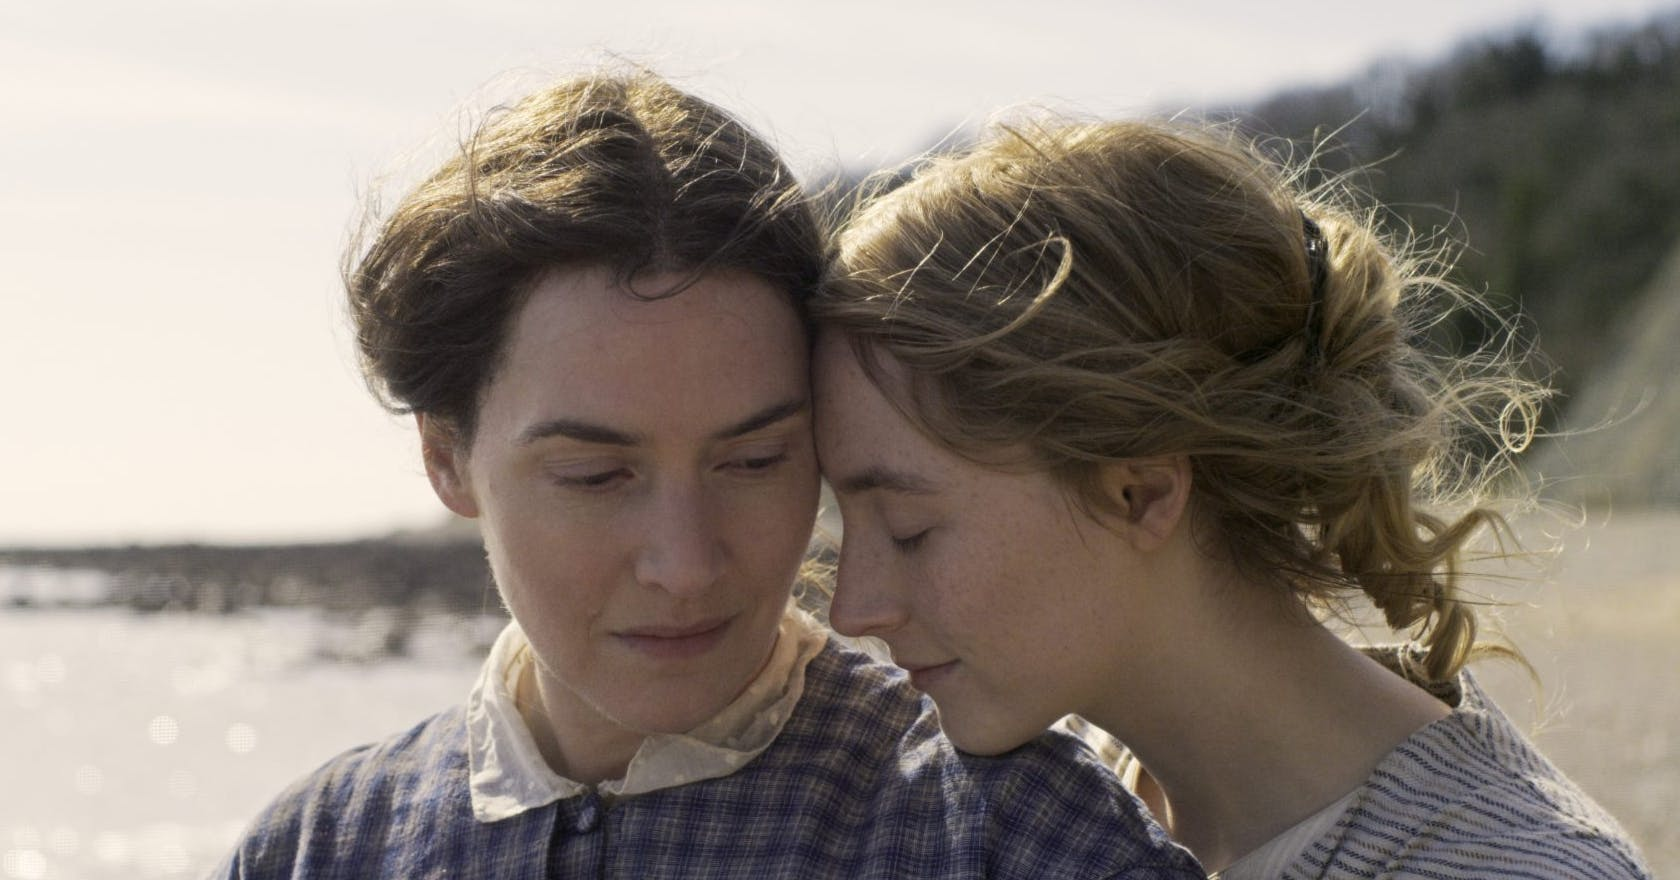 Ammonite review: Kate Winslet and Saoirse Ronan set the screen on fire in this LGBTQ+ love story